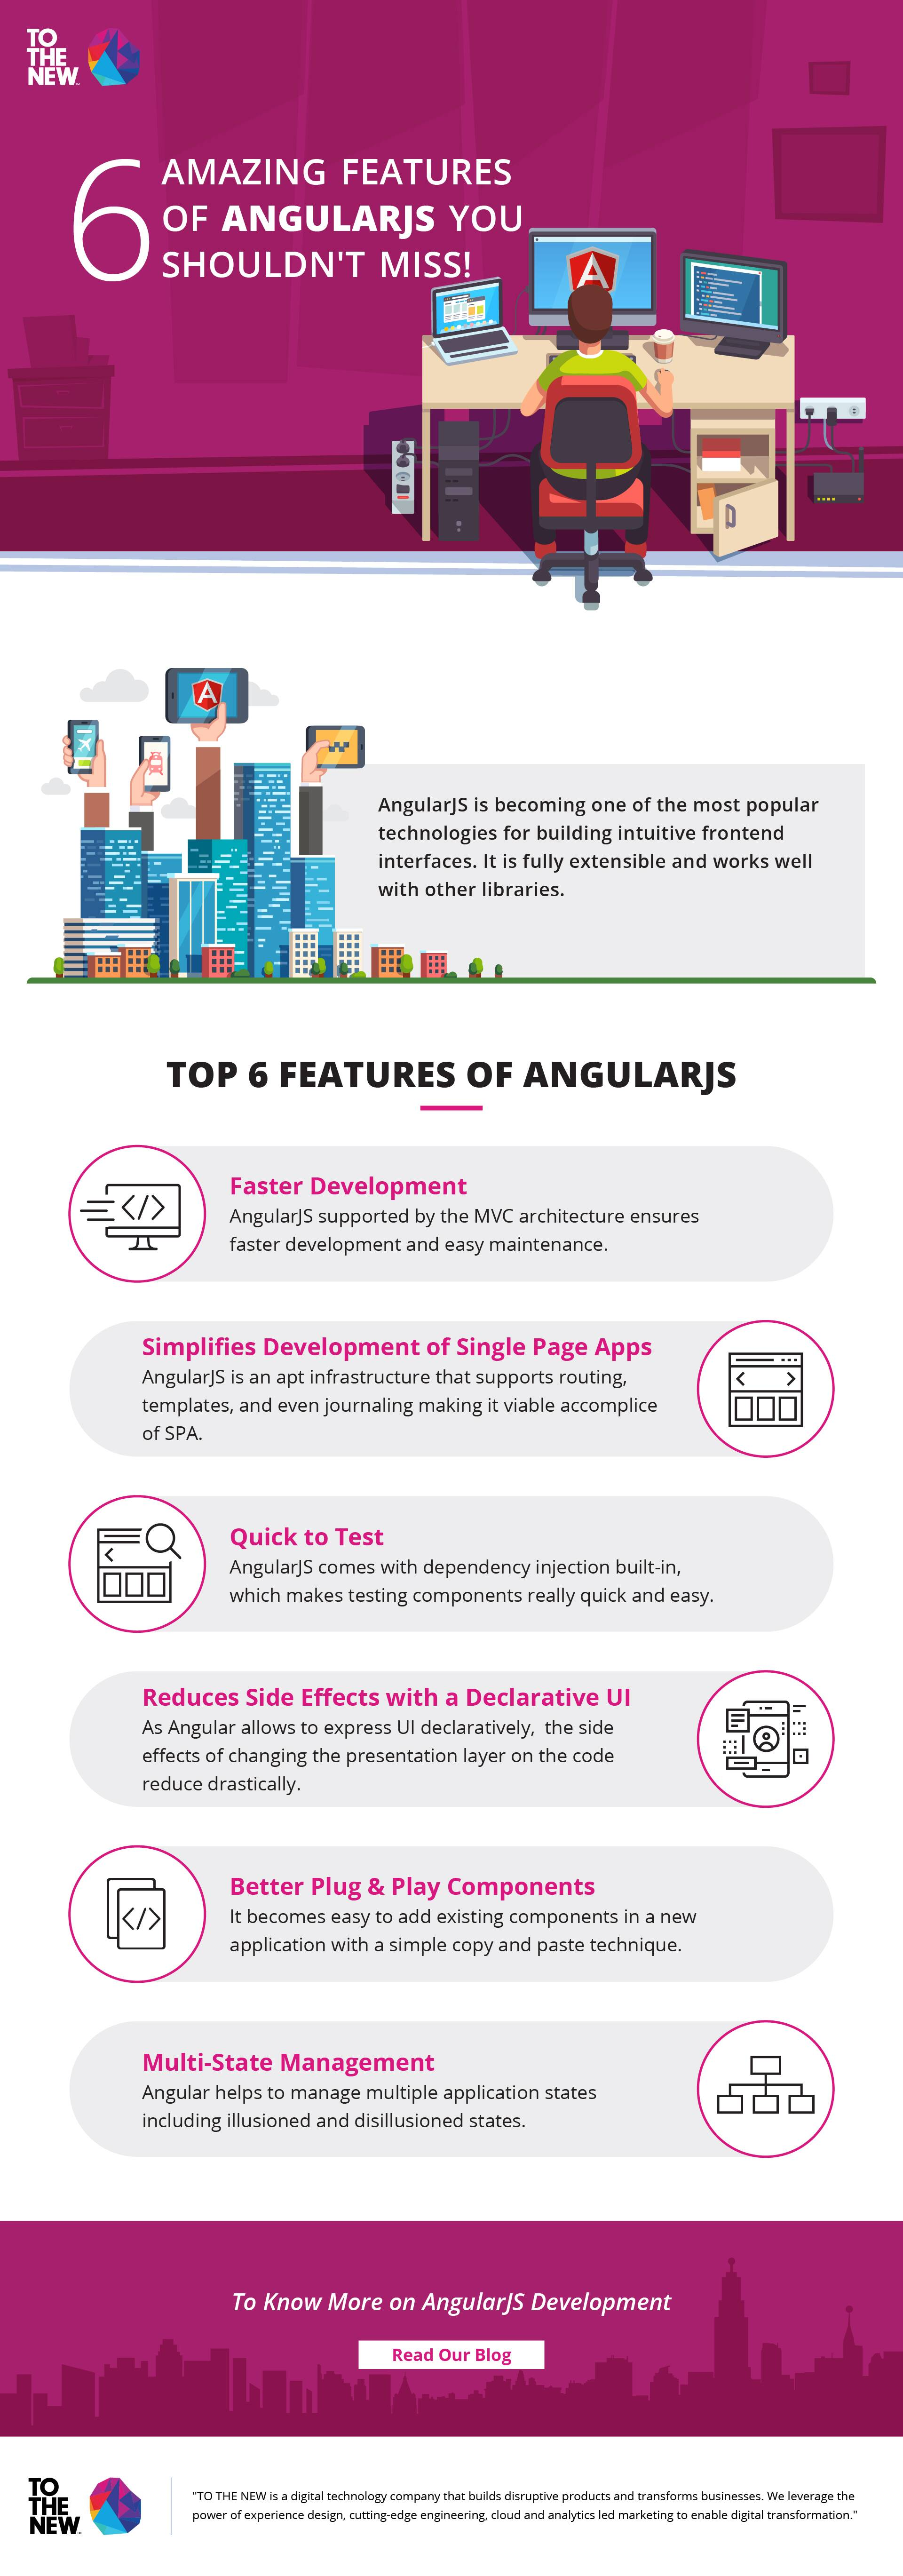 Reasons for AngularJS Development Companies to Leverage this Framework